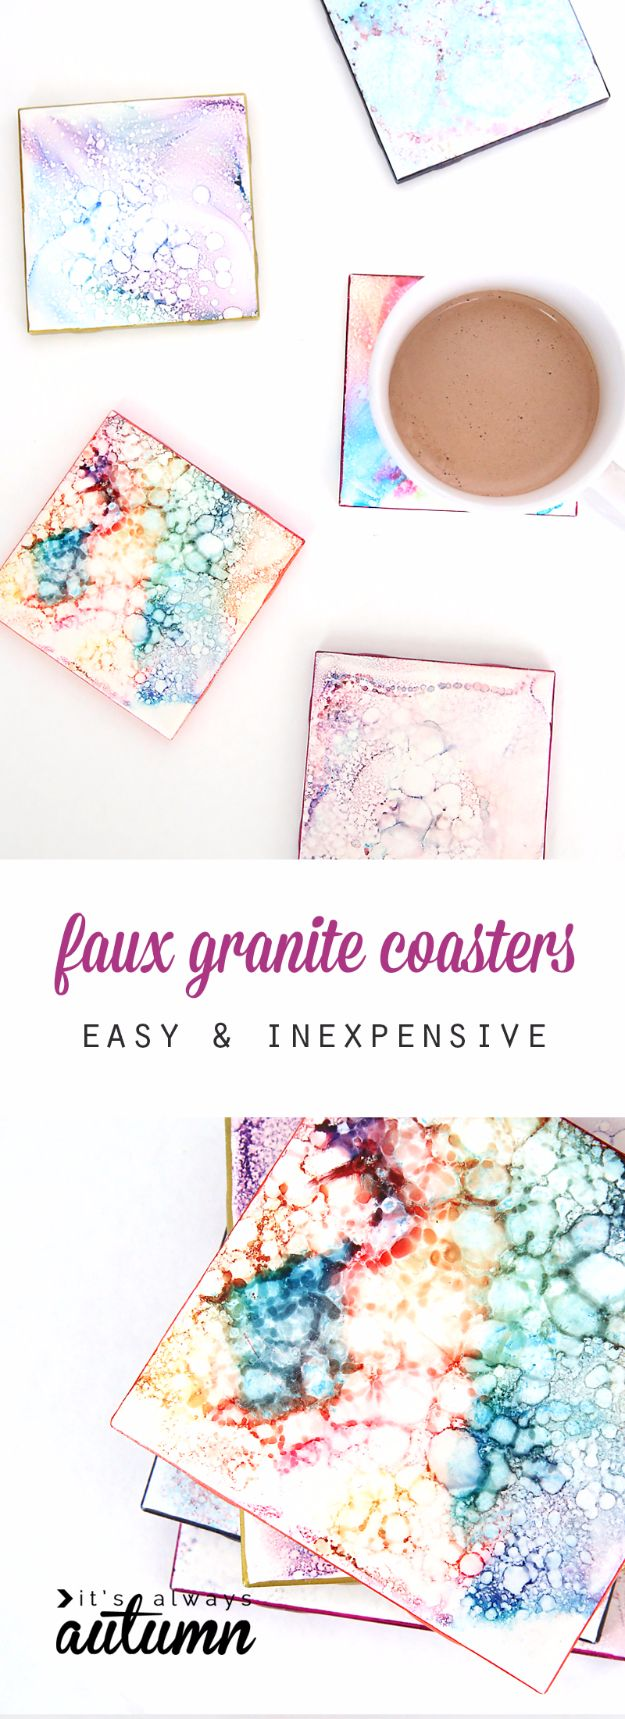 Cheap DIY Gifts and Inexpensive Homemade Christmas Gift Ideas for People on A Budget - Faux Granite Coasters - To Make These Cool Presents Instead of Buying for the Holidays - Easy and Low Cost Gifts for Mom, Dad, Friends and Family - Quick Dollar Store Crafts and Projects for Xmas Gift Giving #gifts #diy